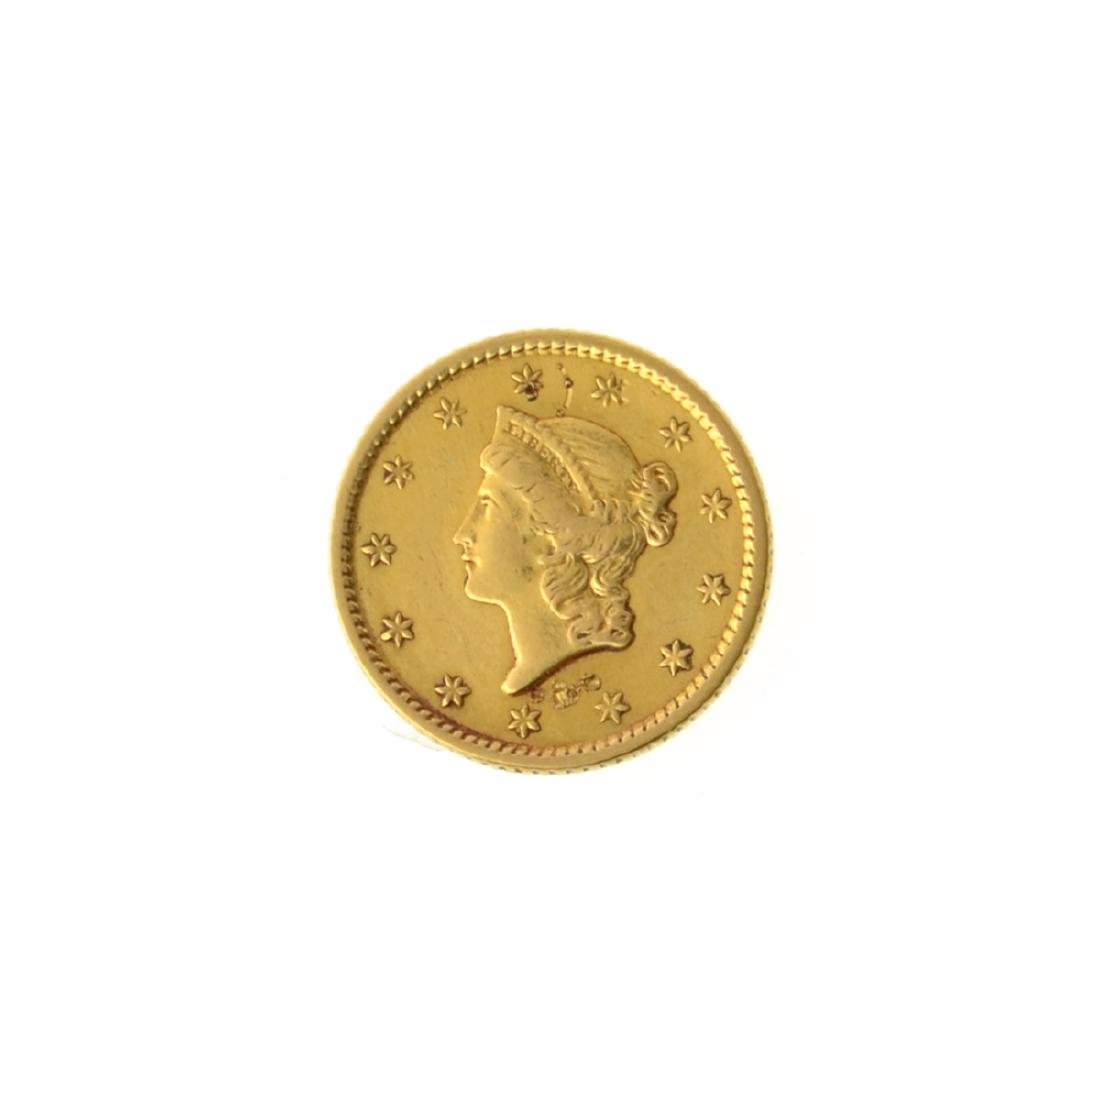 *1853 $1 U.S. Liberty Head Gold Coin (JG-MRT)